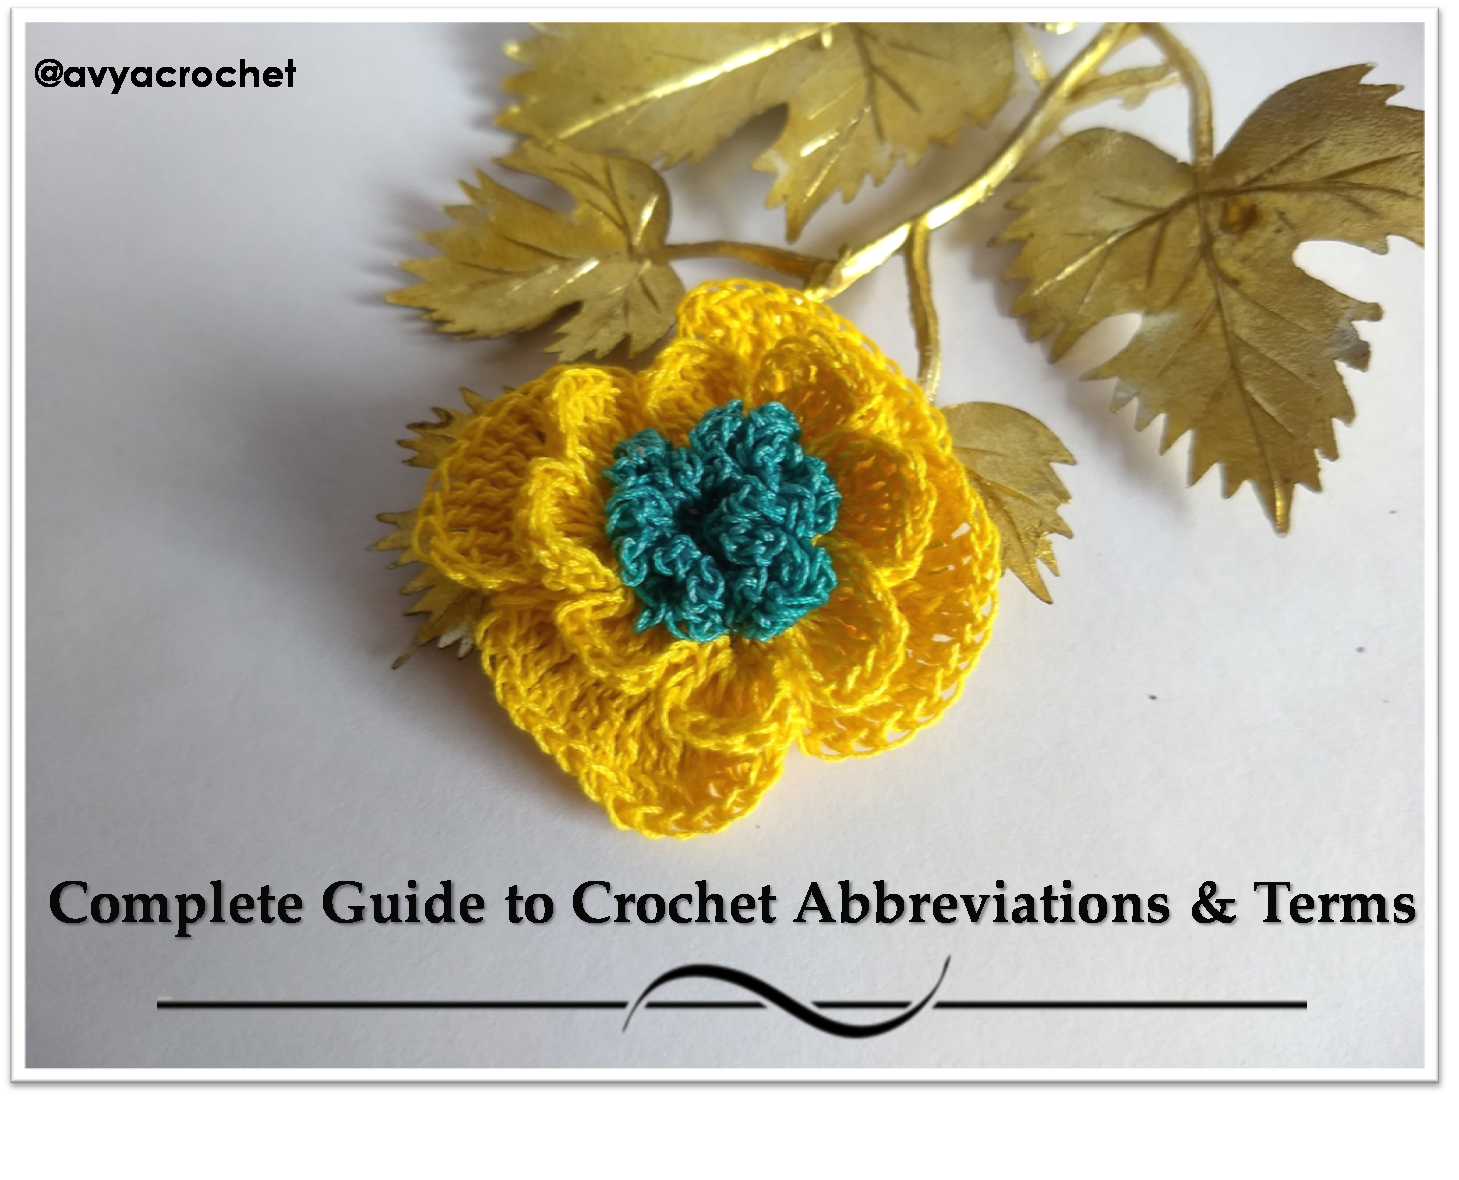 Complete Guide to Crochet Abbreviations & Terms